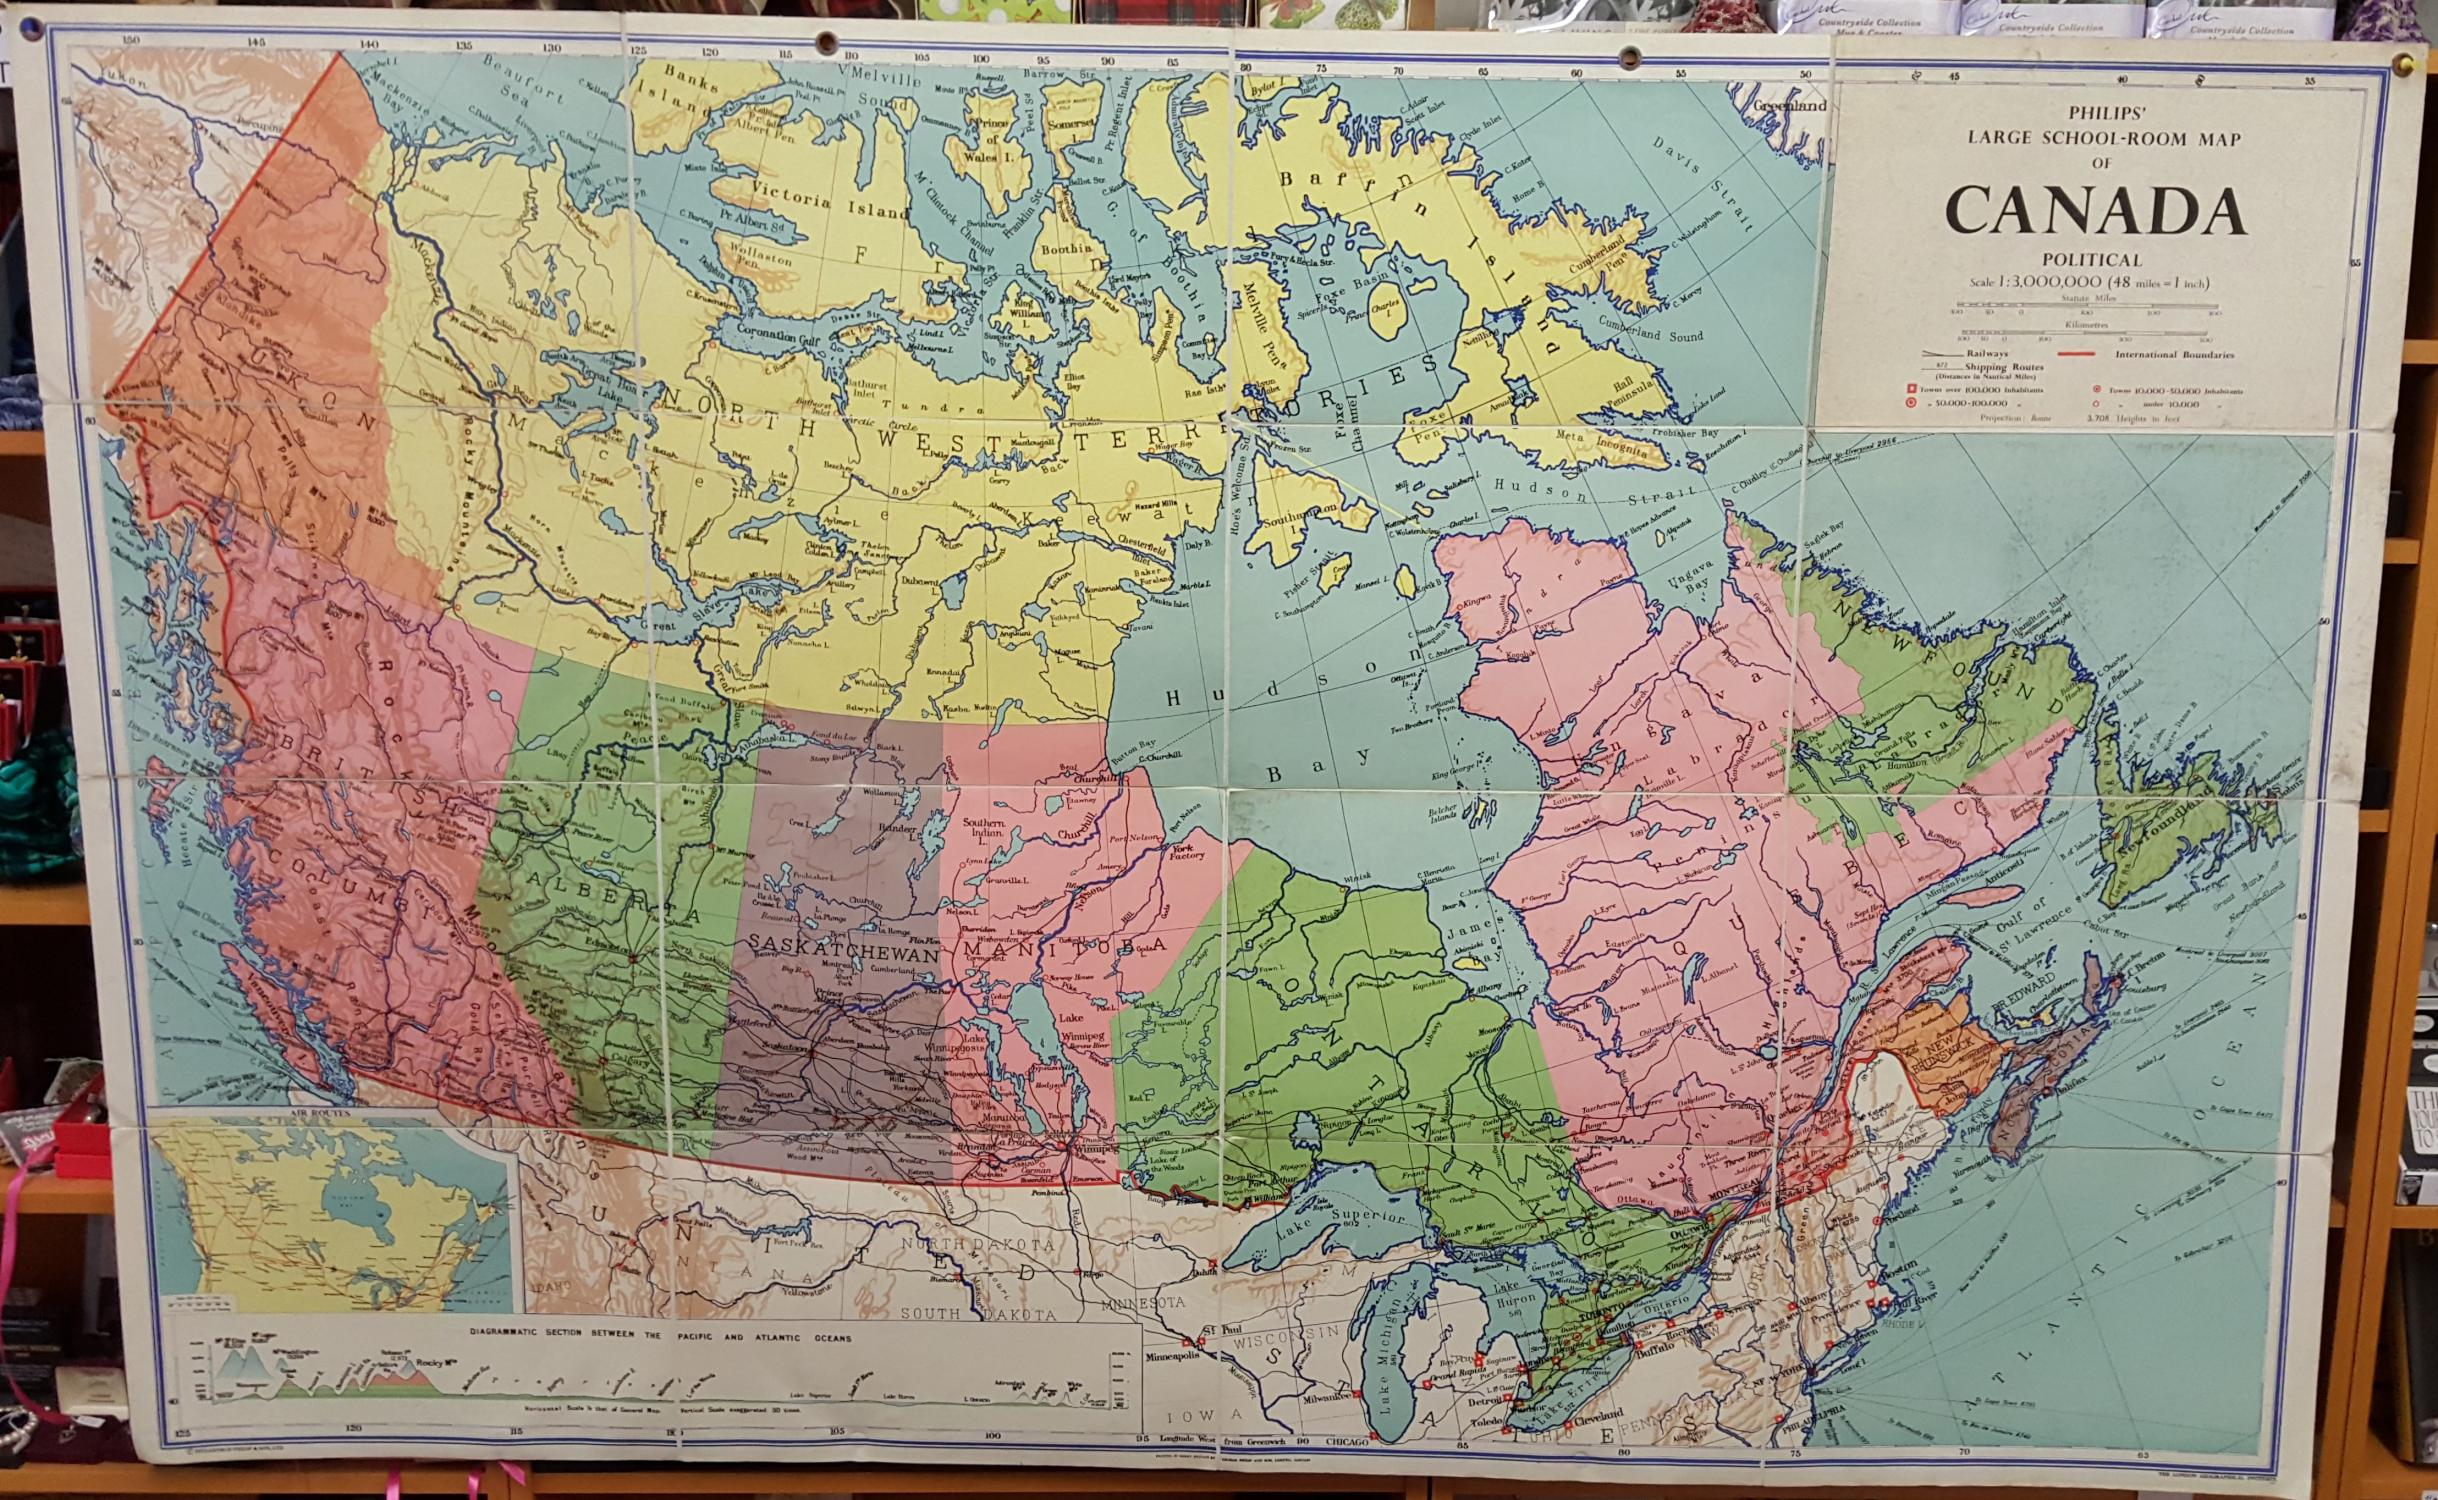 The Political Map Of Canada.Philips Large School Room Map Of Canada